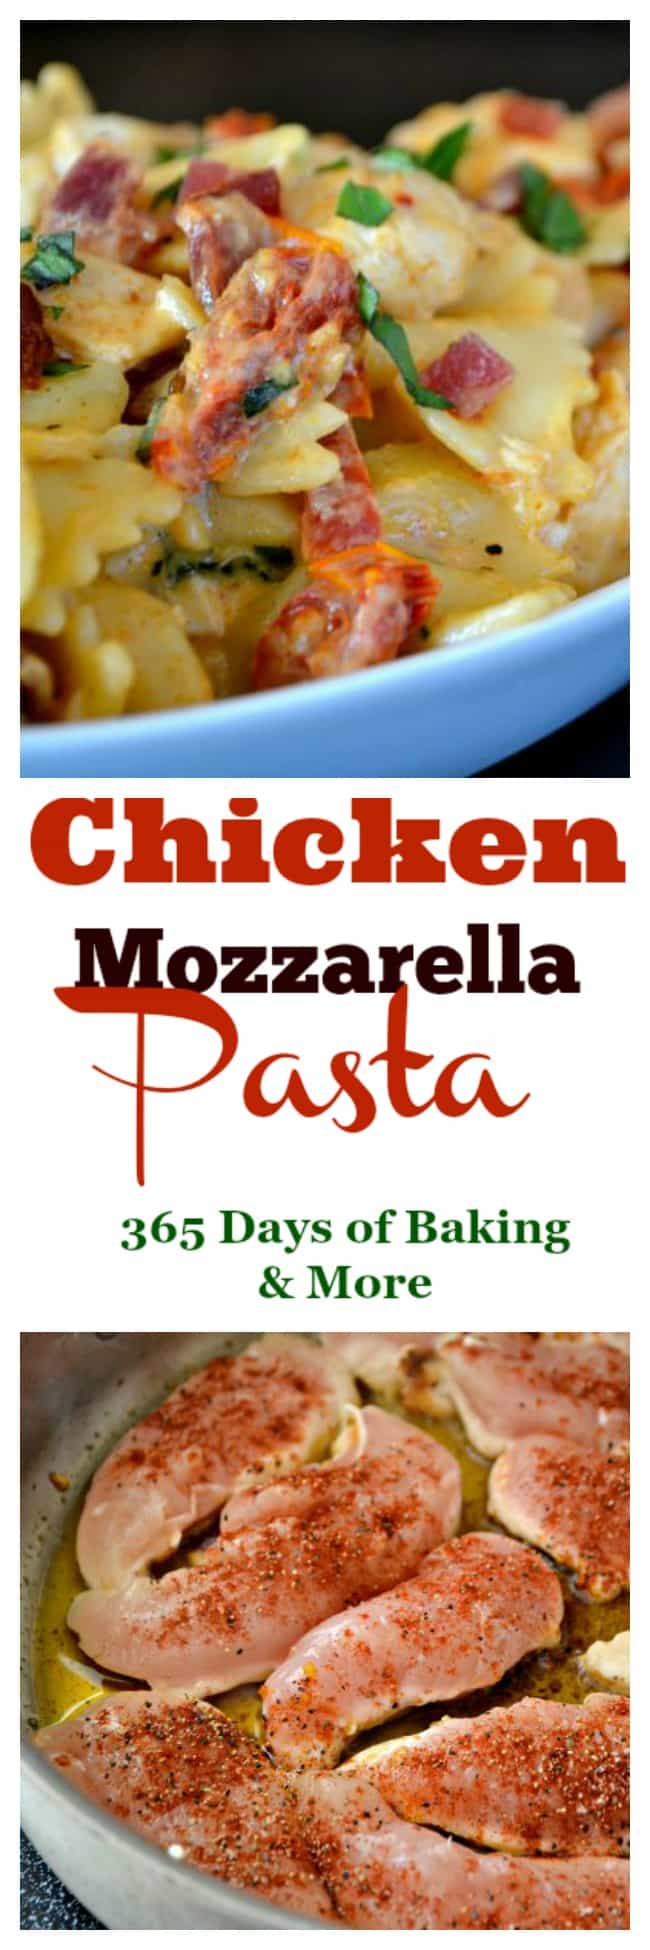 Chicken mozzarella pasta 365 days of baking and more farfalle pasta tossed with some seasoned cooked chicken tenders sundried tomatoes and bacon in a forumfinder Images